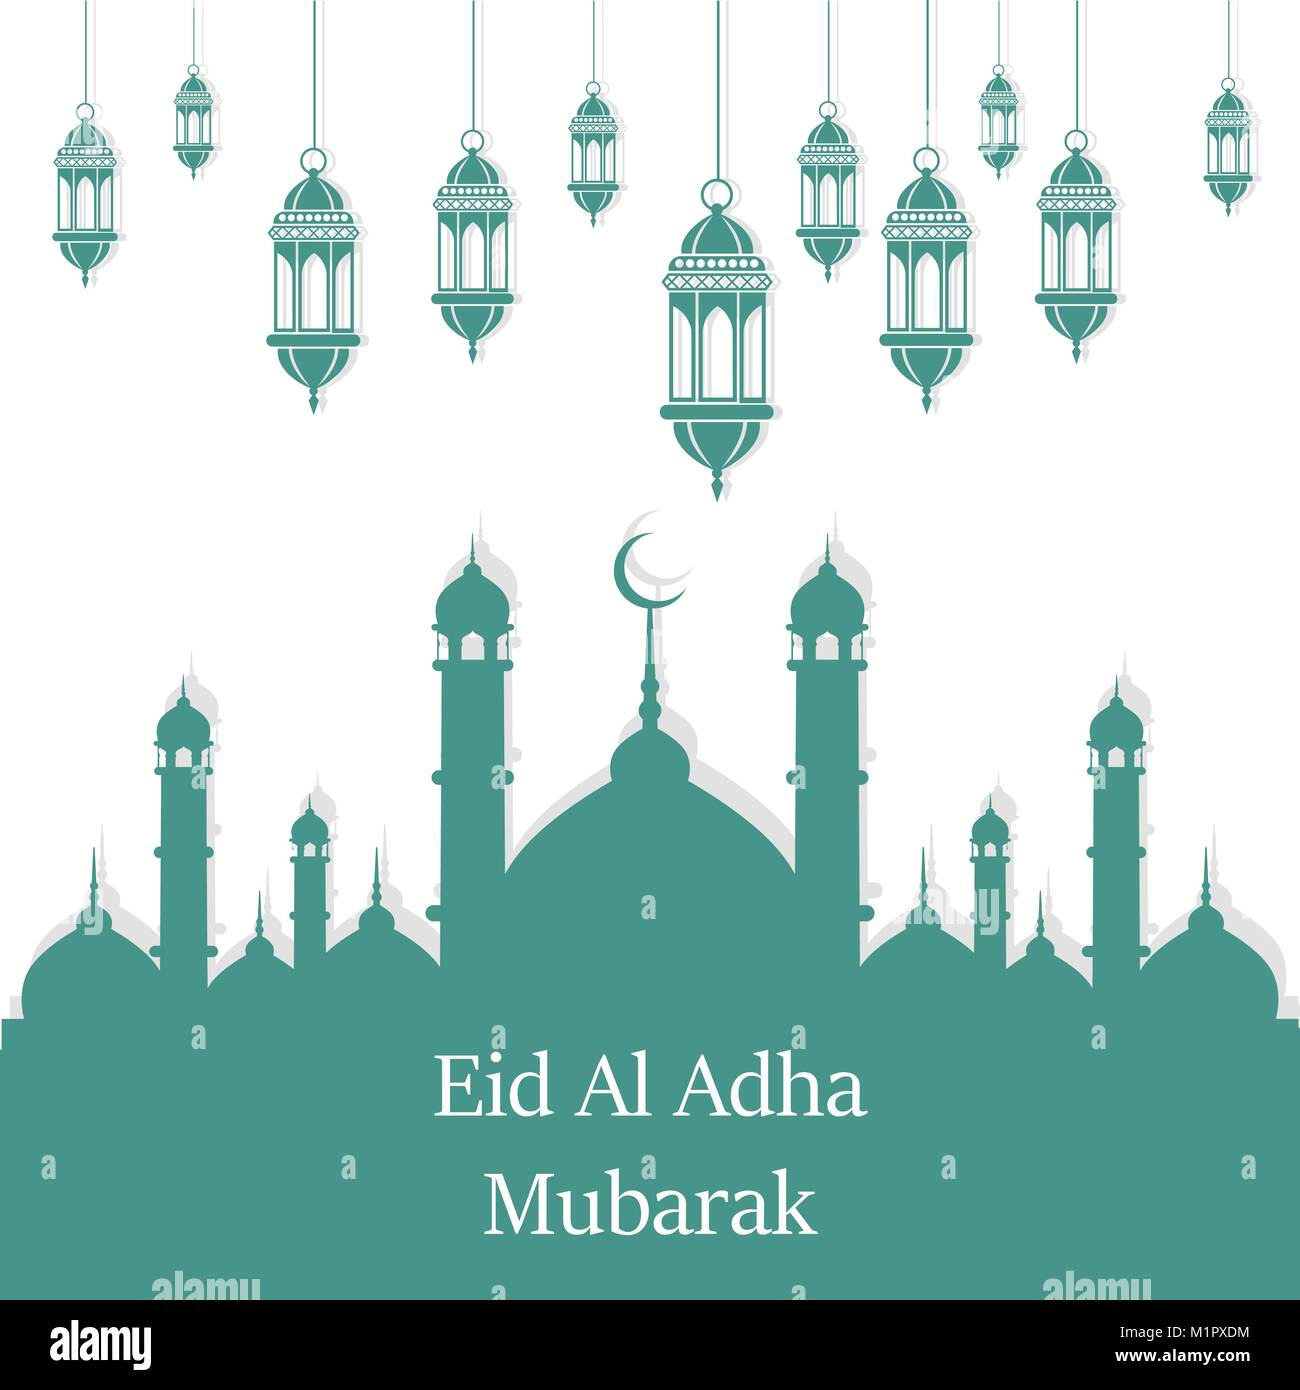 islamic festival of sacrifice eid al adha mubarak greeting card stock vector image art alamy https www alamy com stock photo islamic festival of sacrifice eid al adha mubarak greeting card vector 173222048 html